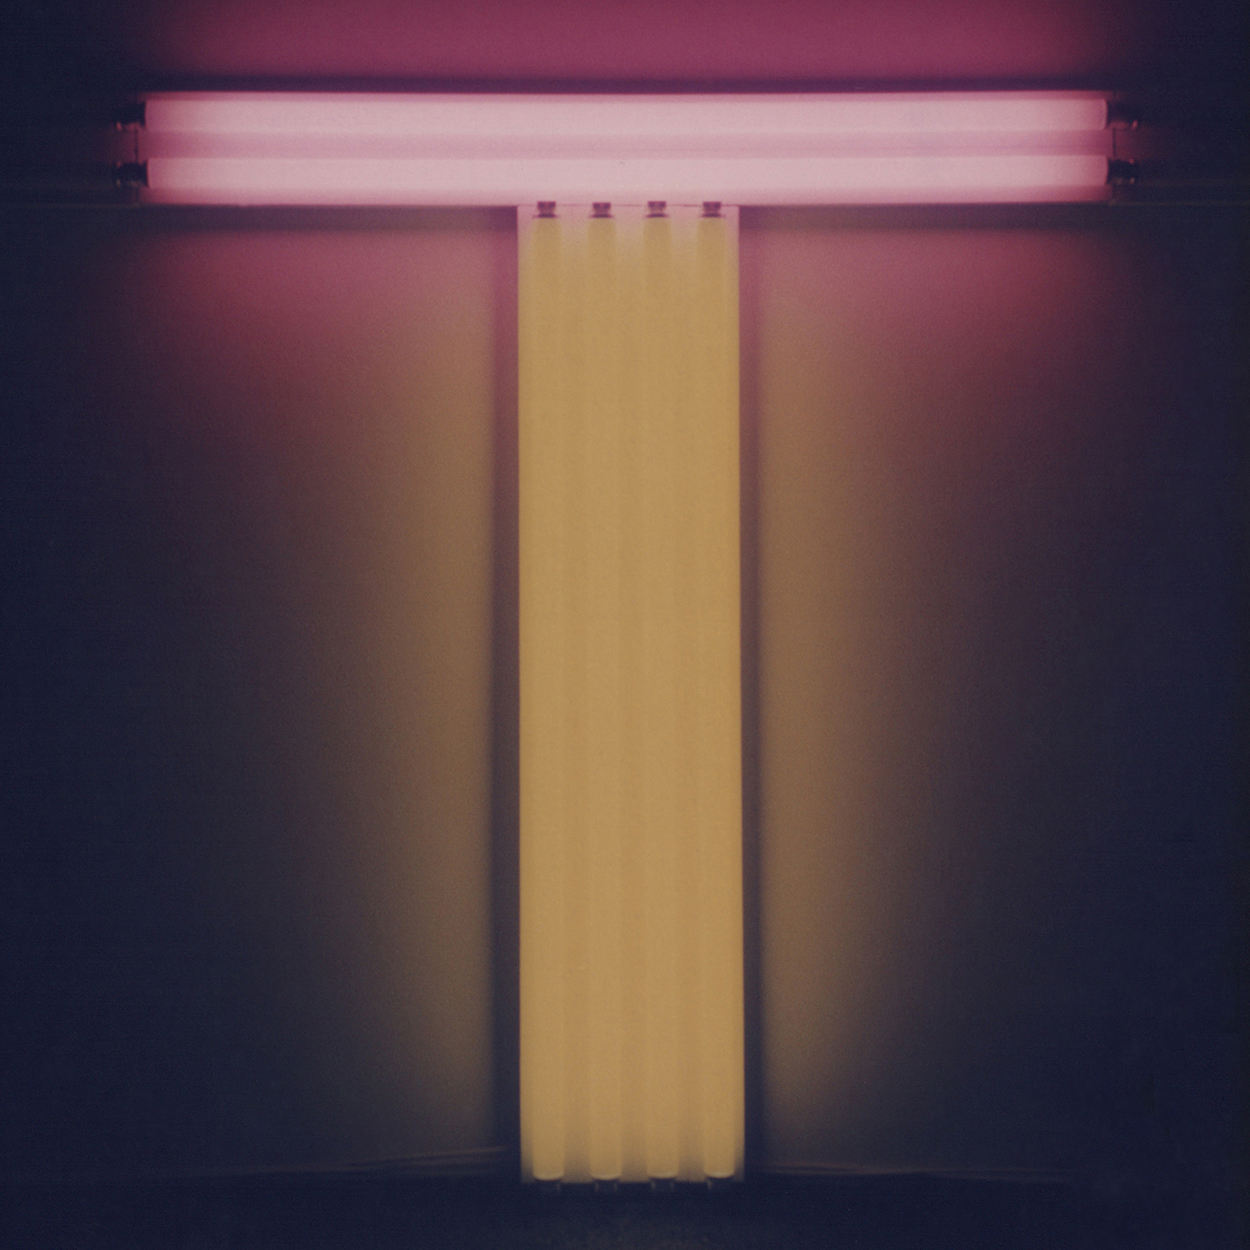 Untitled (To Don Judd, colorist)|yellow and pink fluorescent lights|137 x 122 x 10 cm|1987